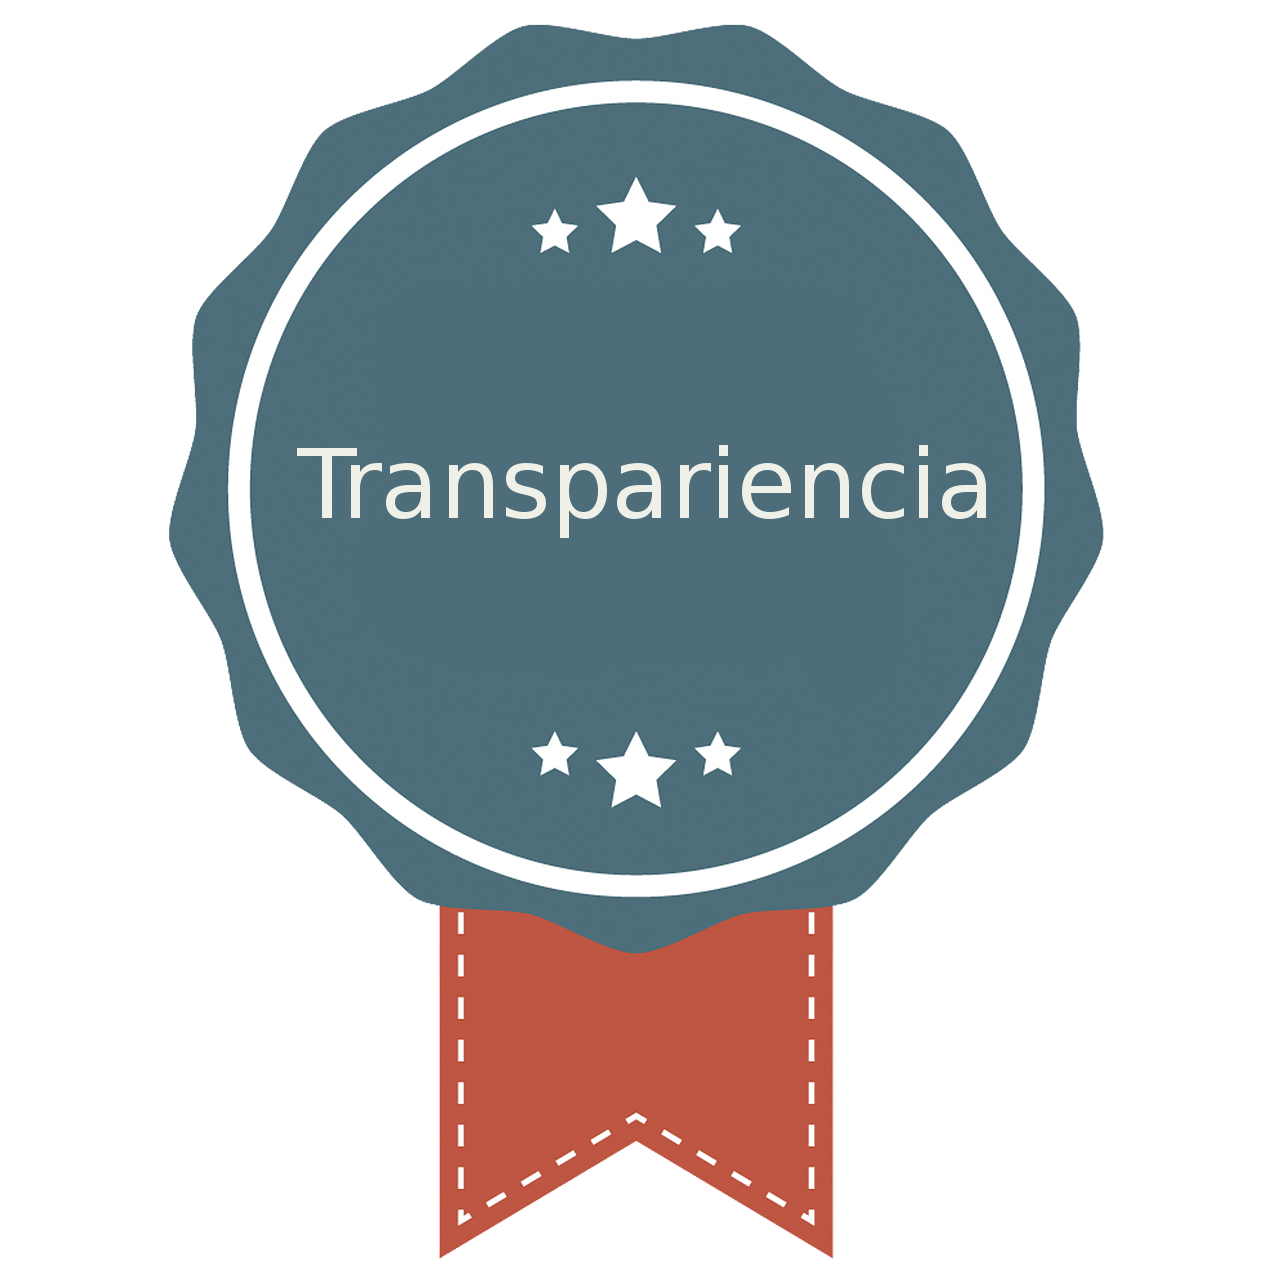 transpariencia-basium Marketing startups sevilla - SEOBasium